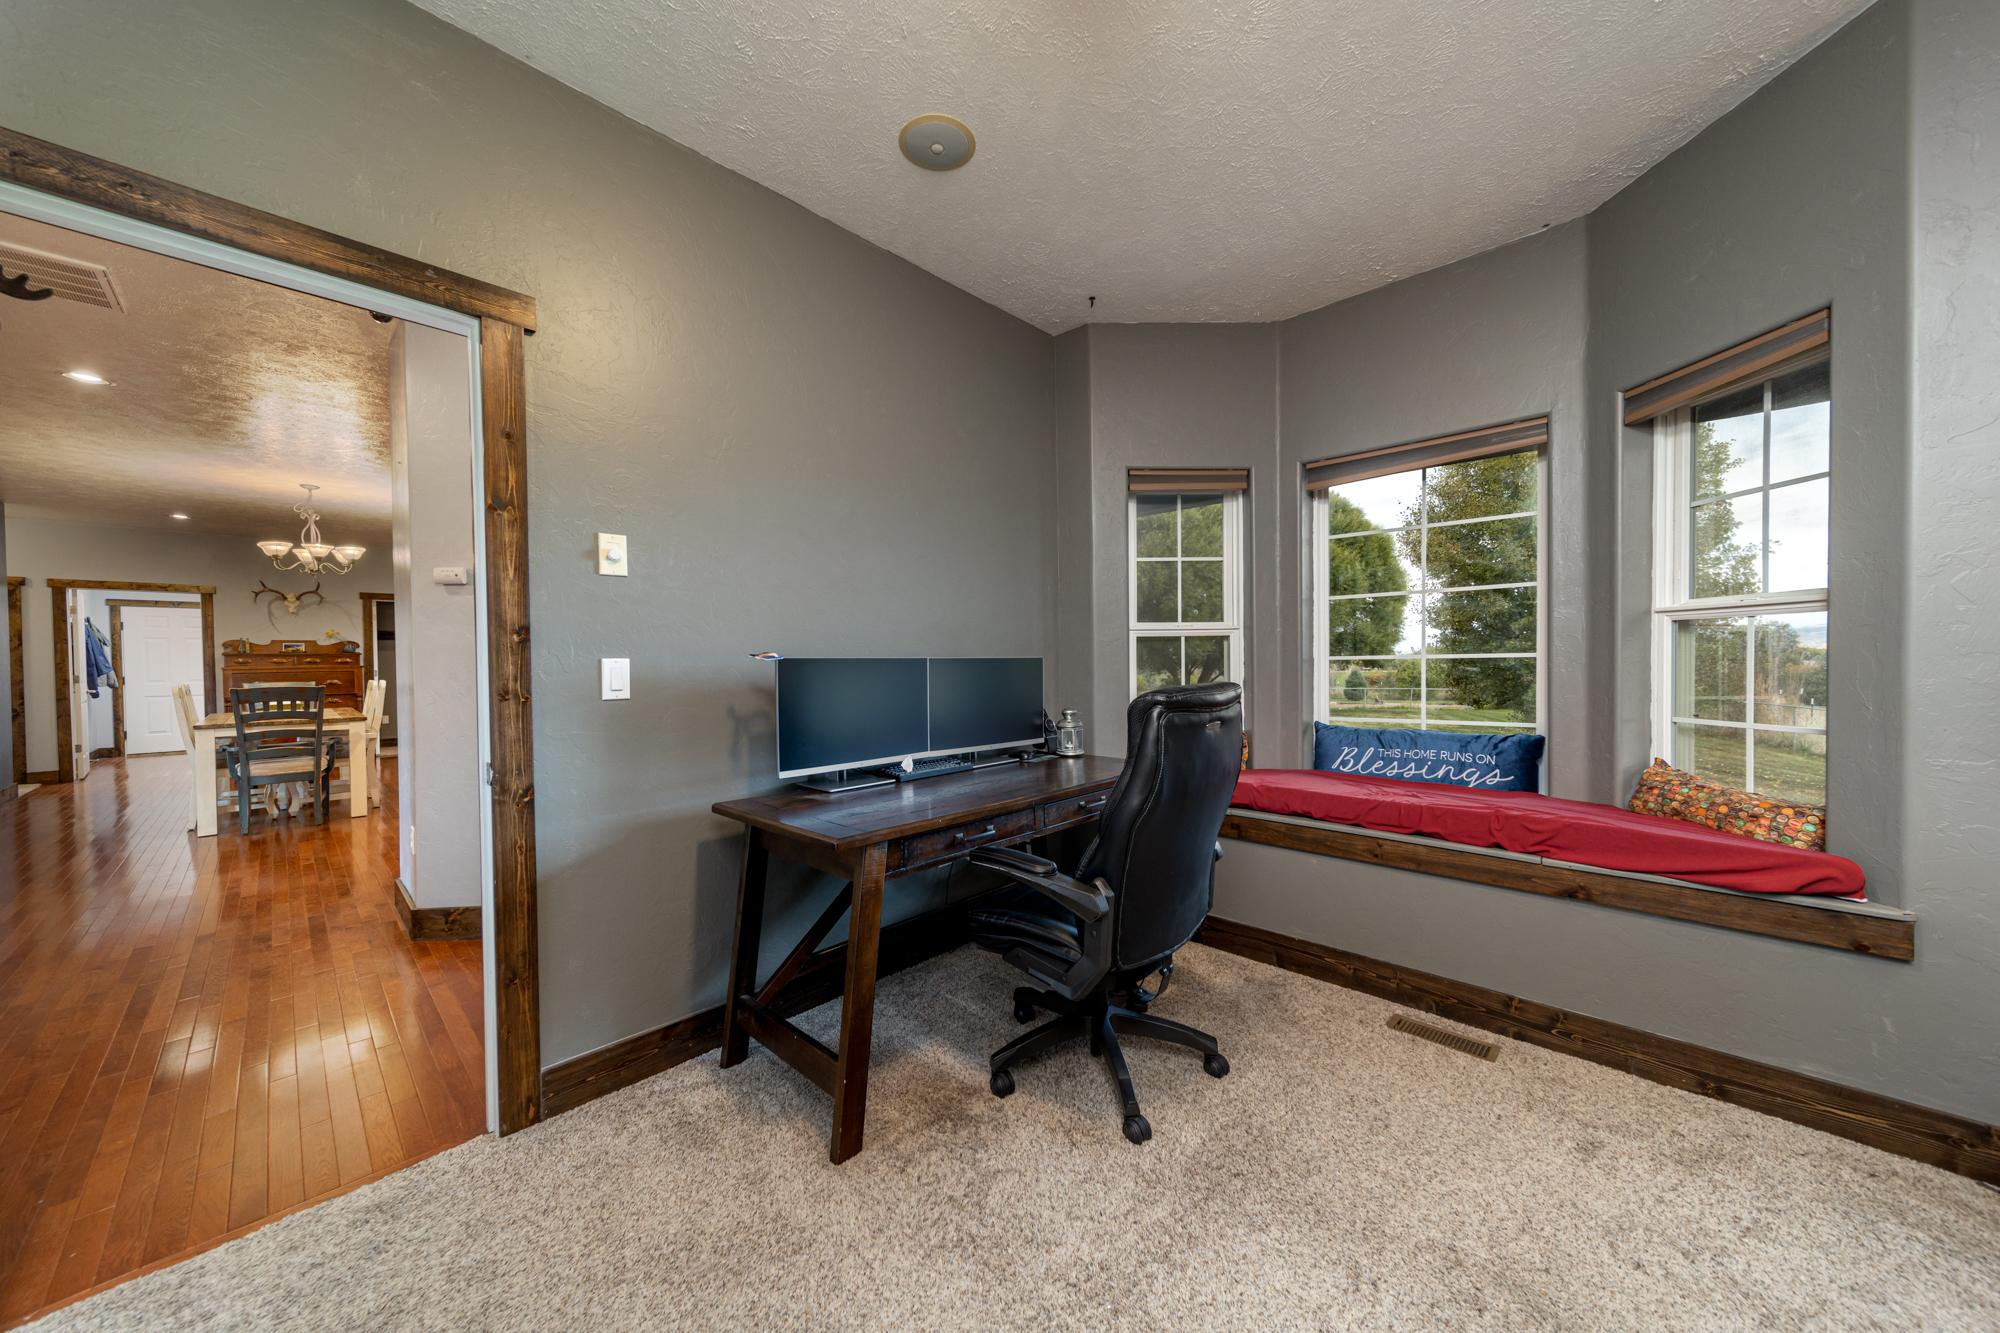 Office with Window Seat - 12703 6100 Rd Montrose, CO 81403 - Atha Team Country Real Estate